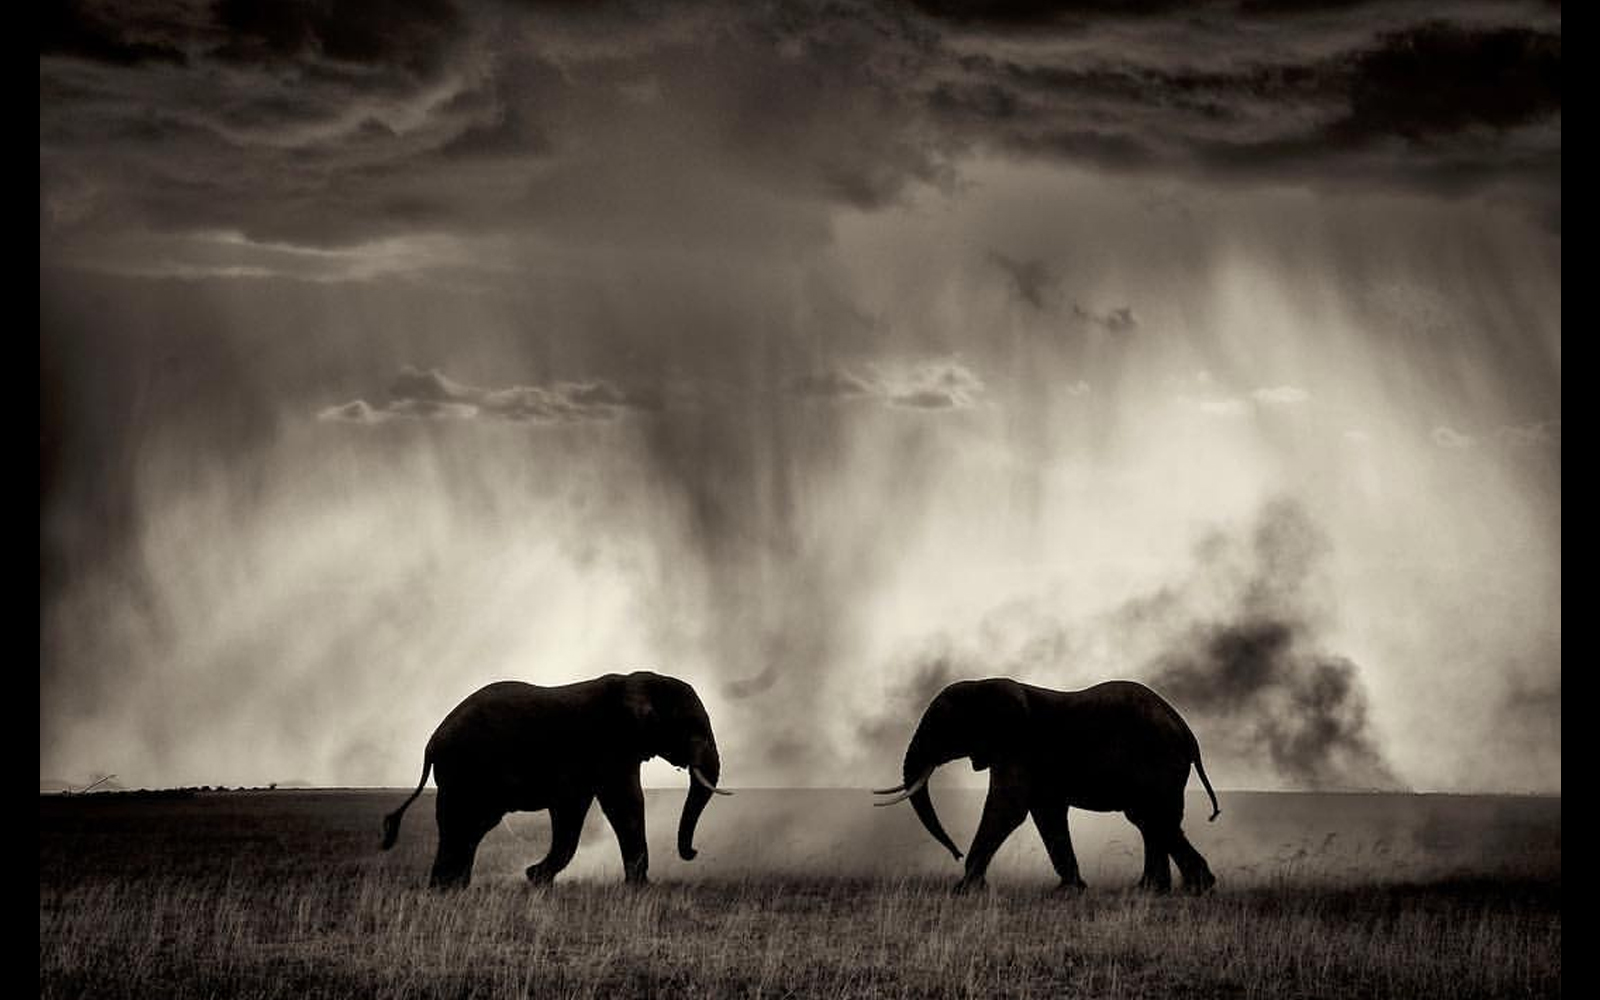 Two elephant bulls fight under a stormy sky in Amboseli National Park, Kenya © Andrew Campbell (Instagram/acsafaris) (Photographer of the Year 2018 Finalist)